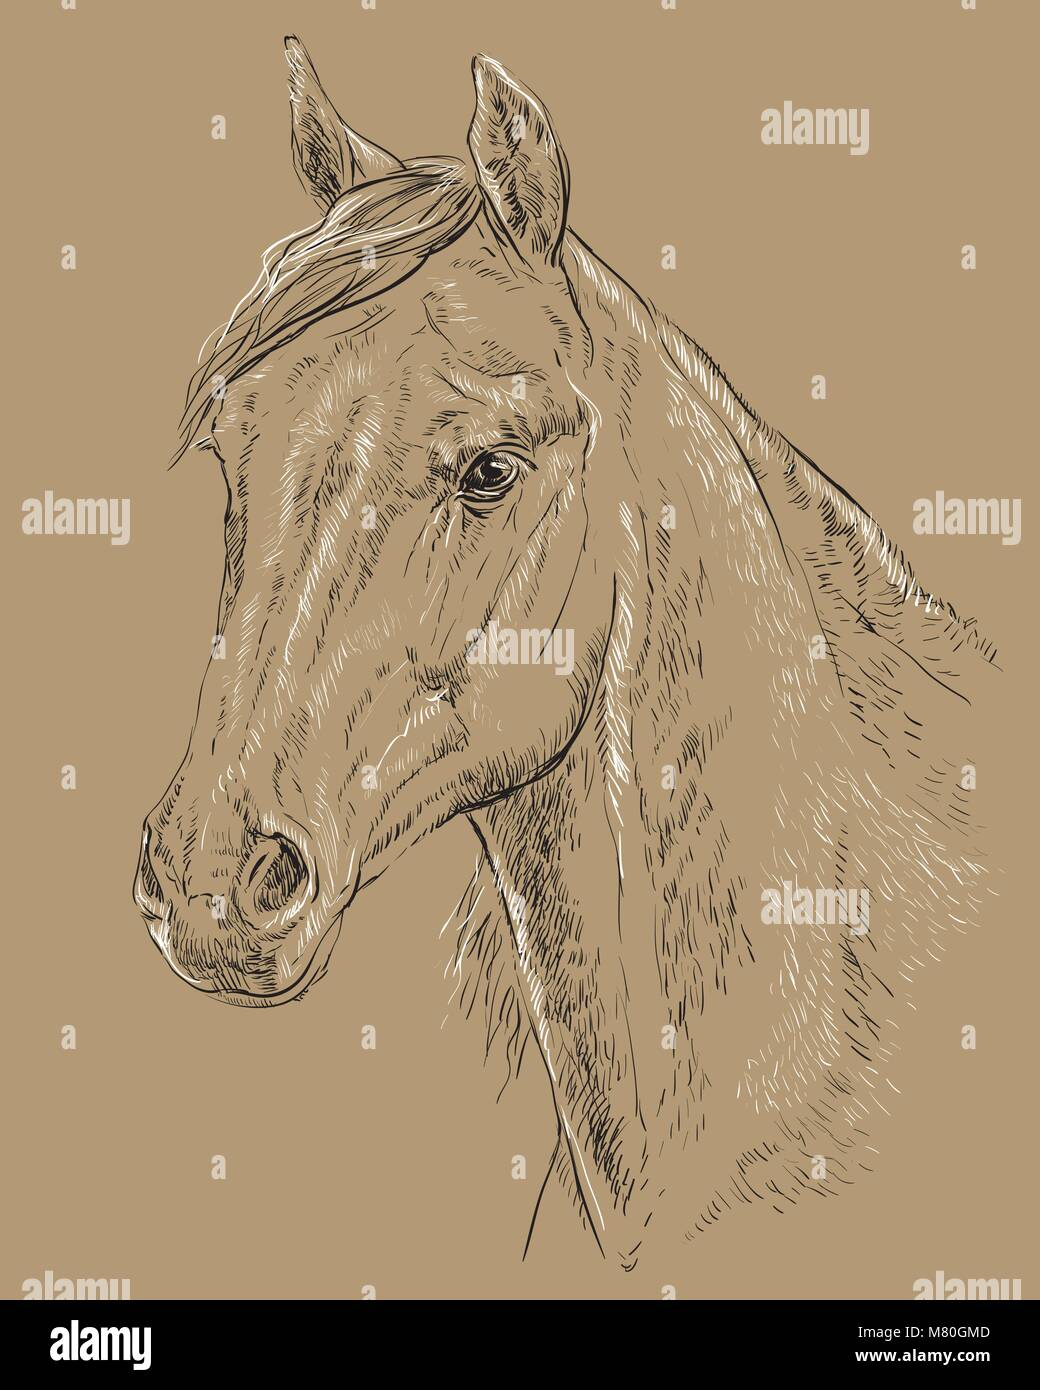 Arabian Horse Painting High Resolution Stock Photography And Images Alamy